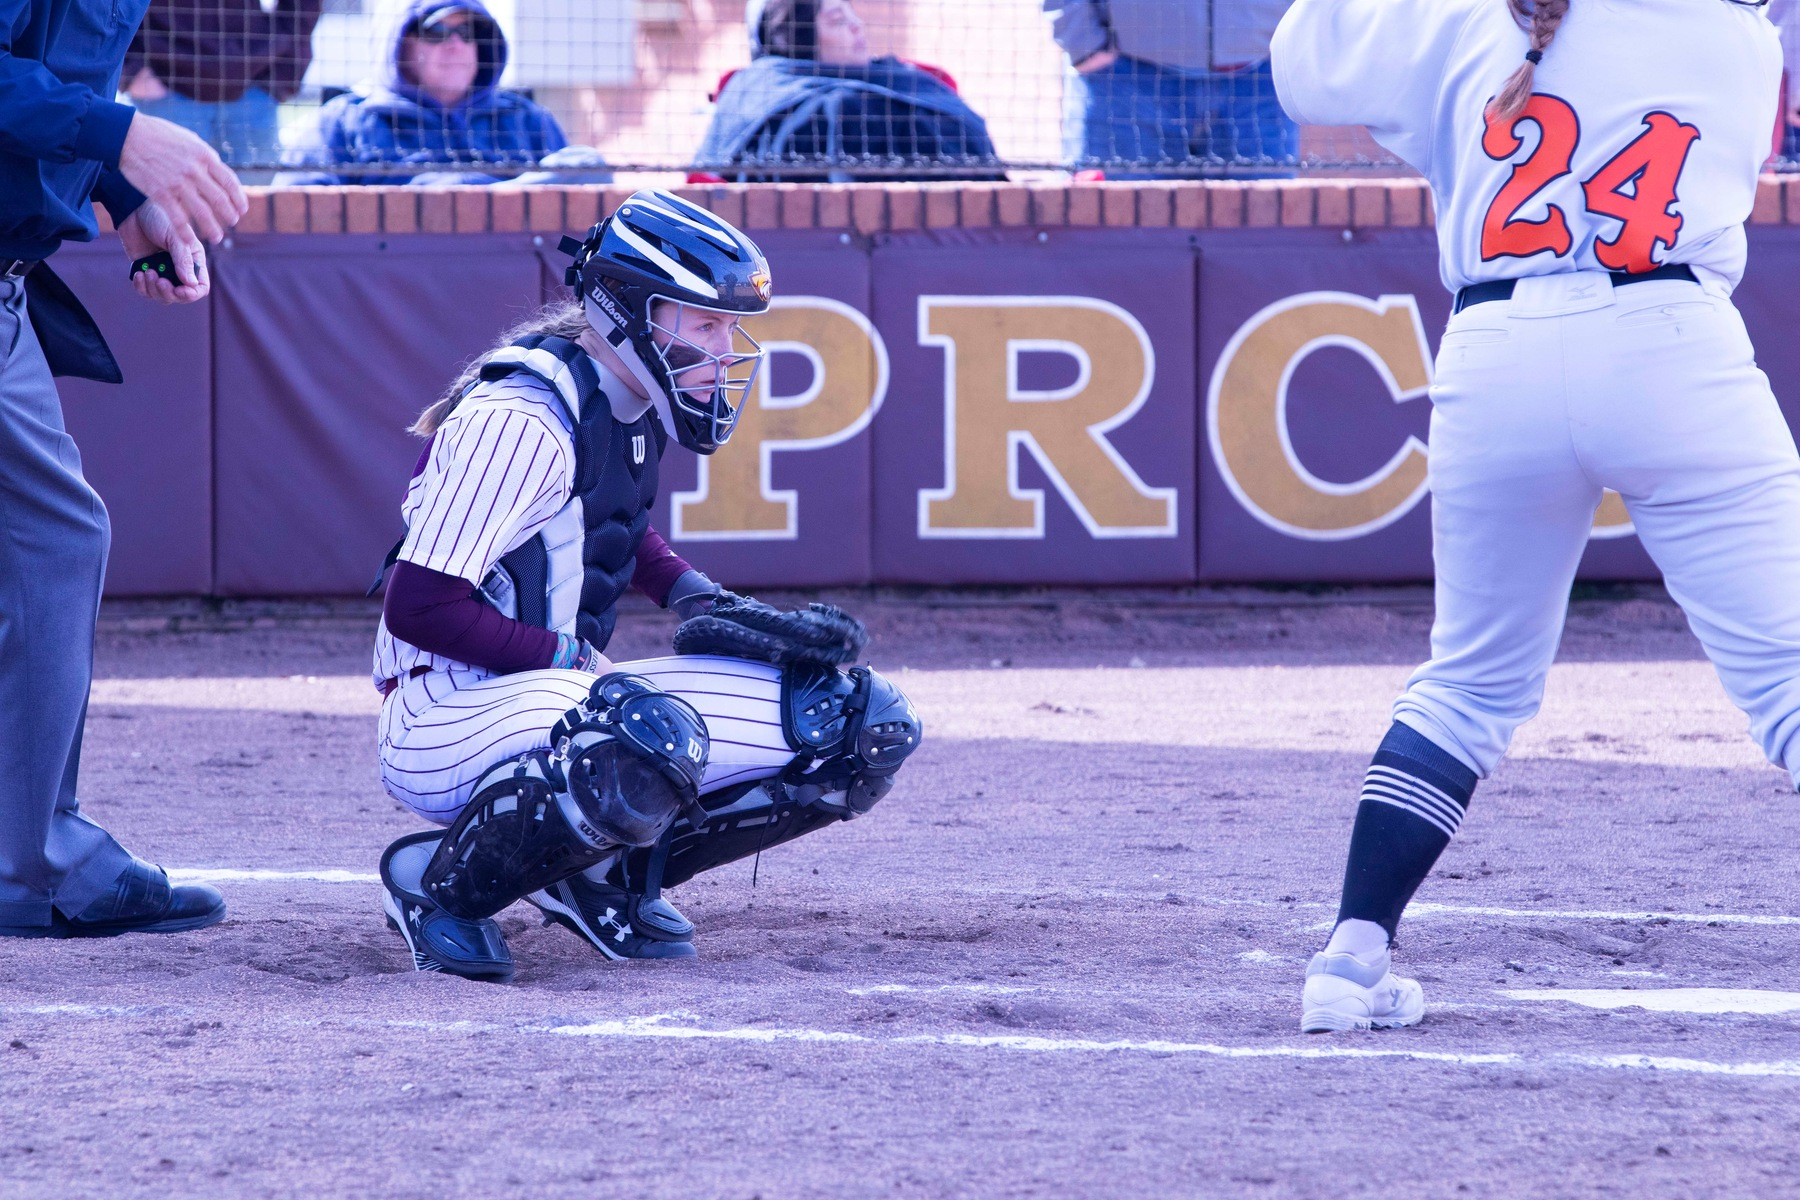 Pearl River opened the Wildcat Invitational on Friday, Feb. 8, 2019 by playing Marion Military Institute at Lady Wildcat Stadium in Poplarville, Miss. (KRISTI HARRIS/PRCC ATHLETICS)